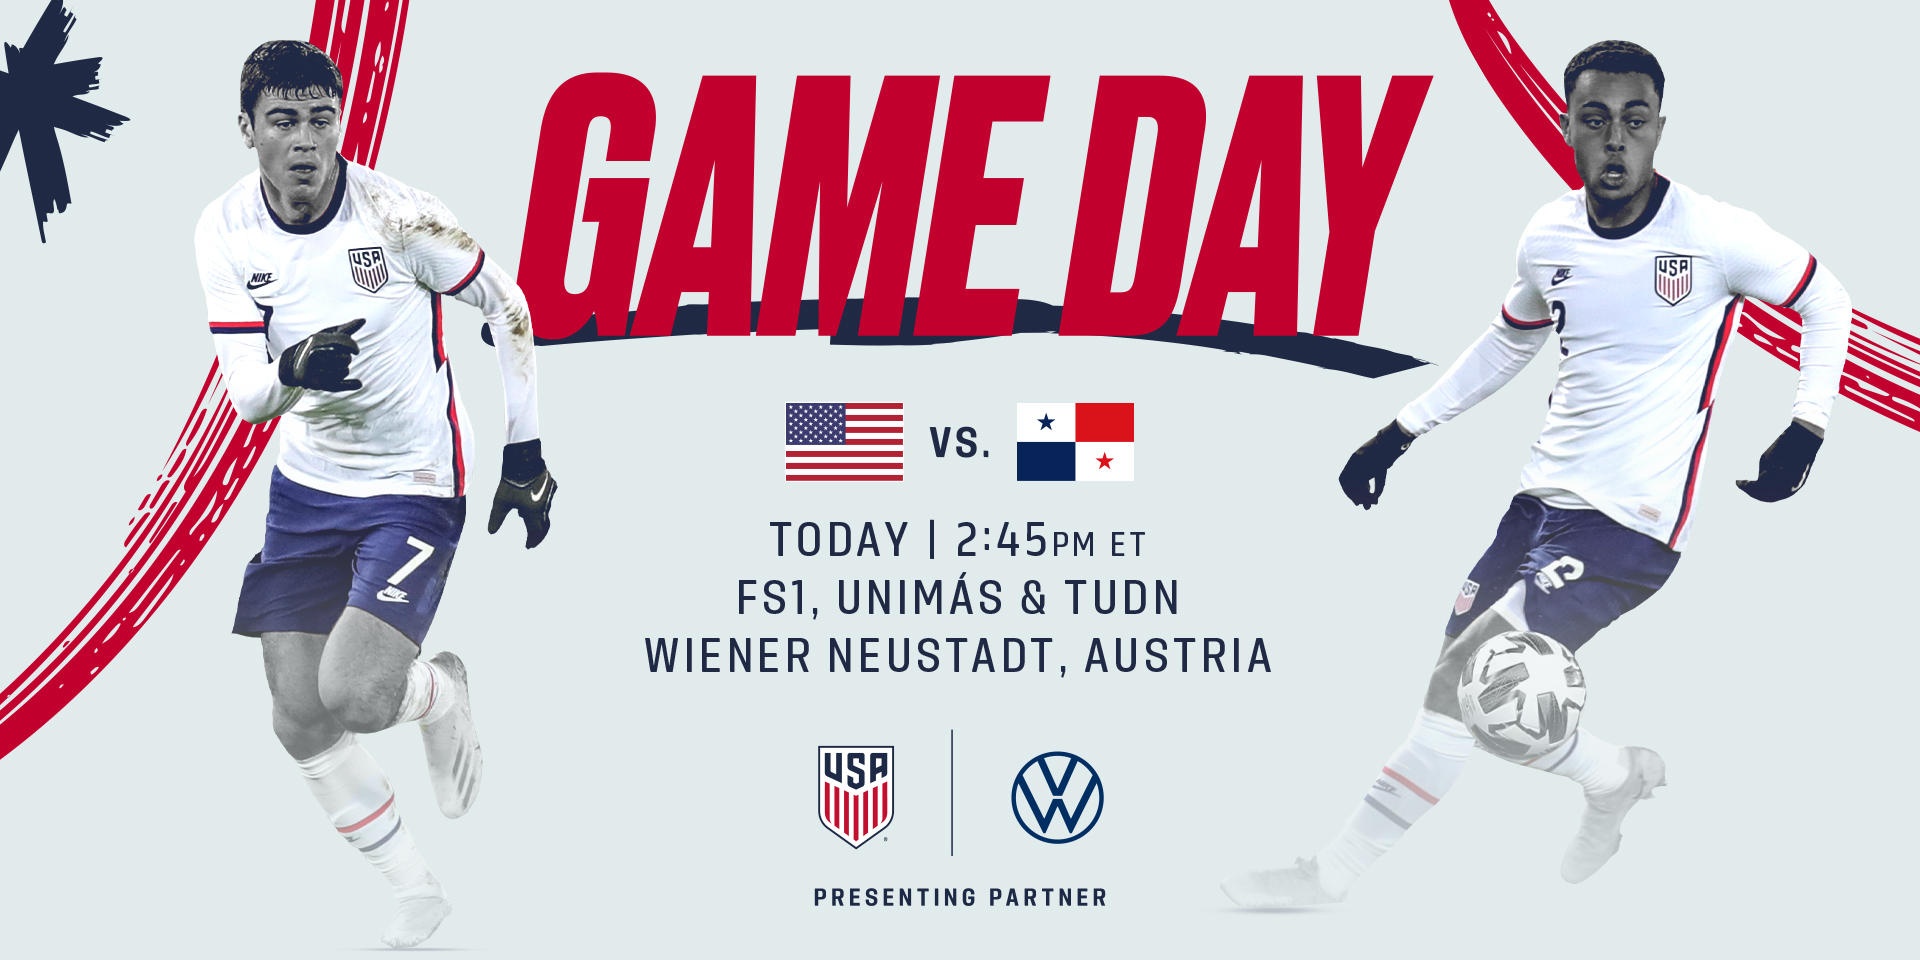 USA vs. Panama - Preview, Schedule, TV Channels & Start Time